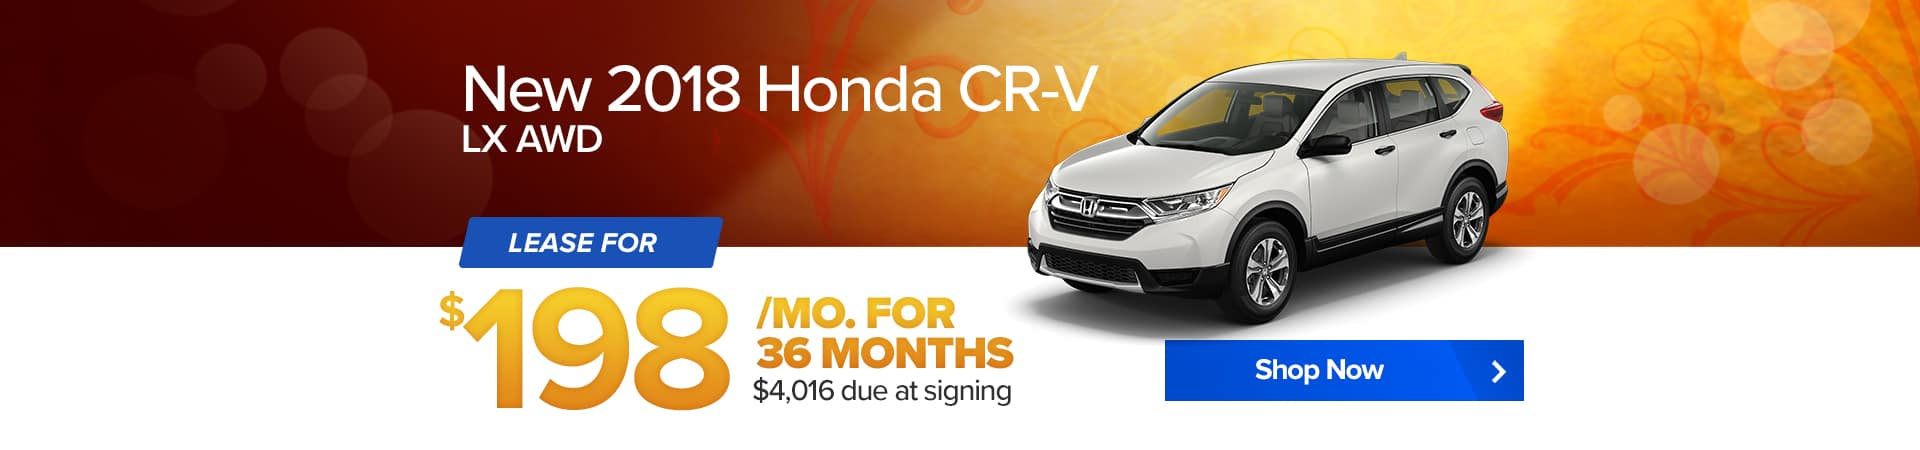 September special for the 2018 Honda CR-V at Balise Honda West Warwick